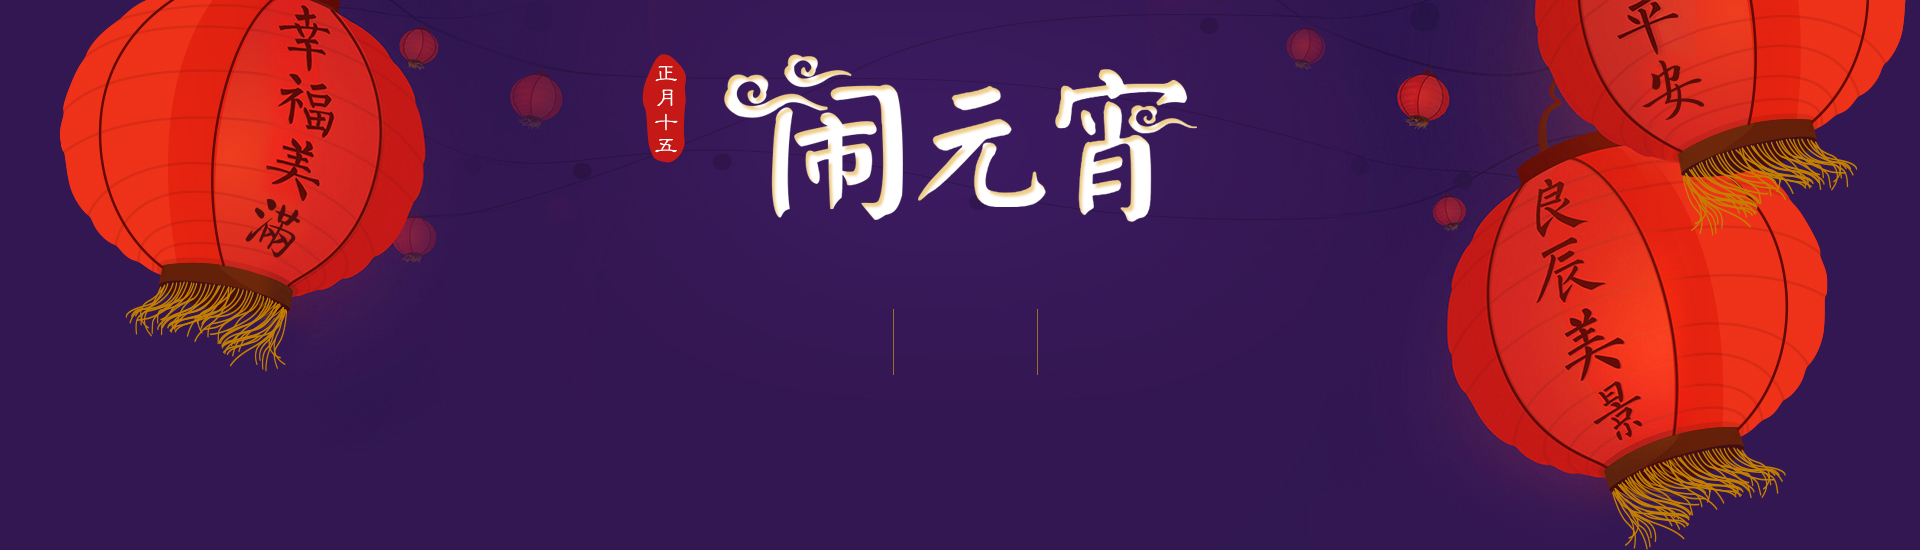 chinesefontdesign.com 2017 02 11 10 04 53 Chinese Lantern Festival   banner PSD Free Download